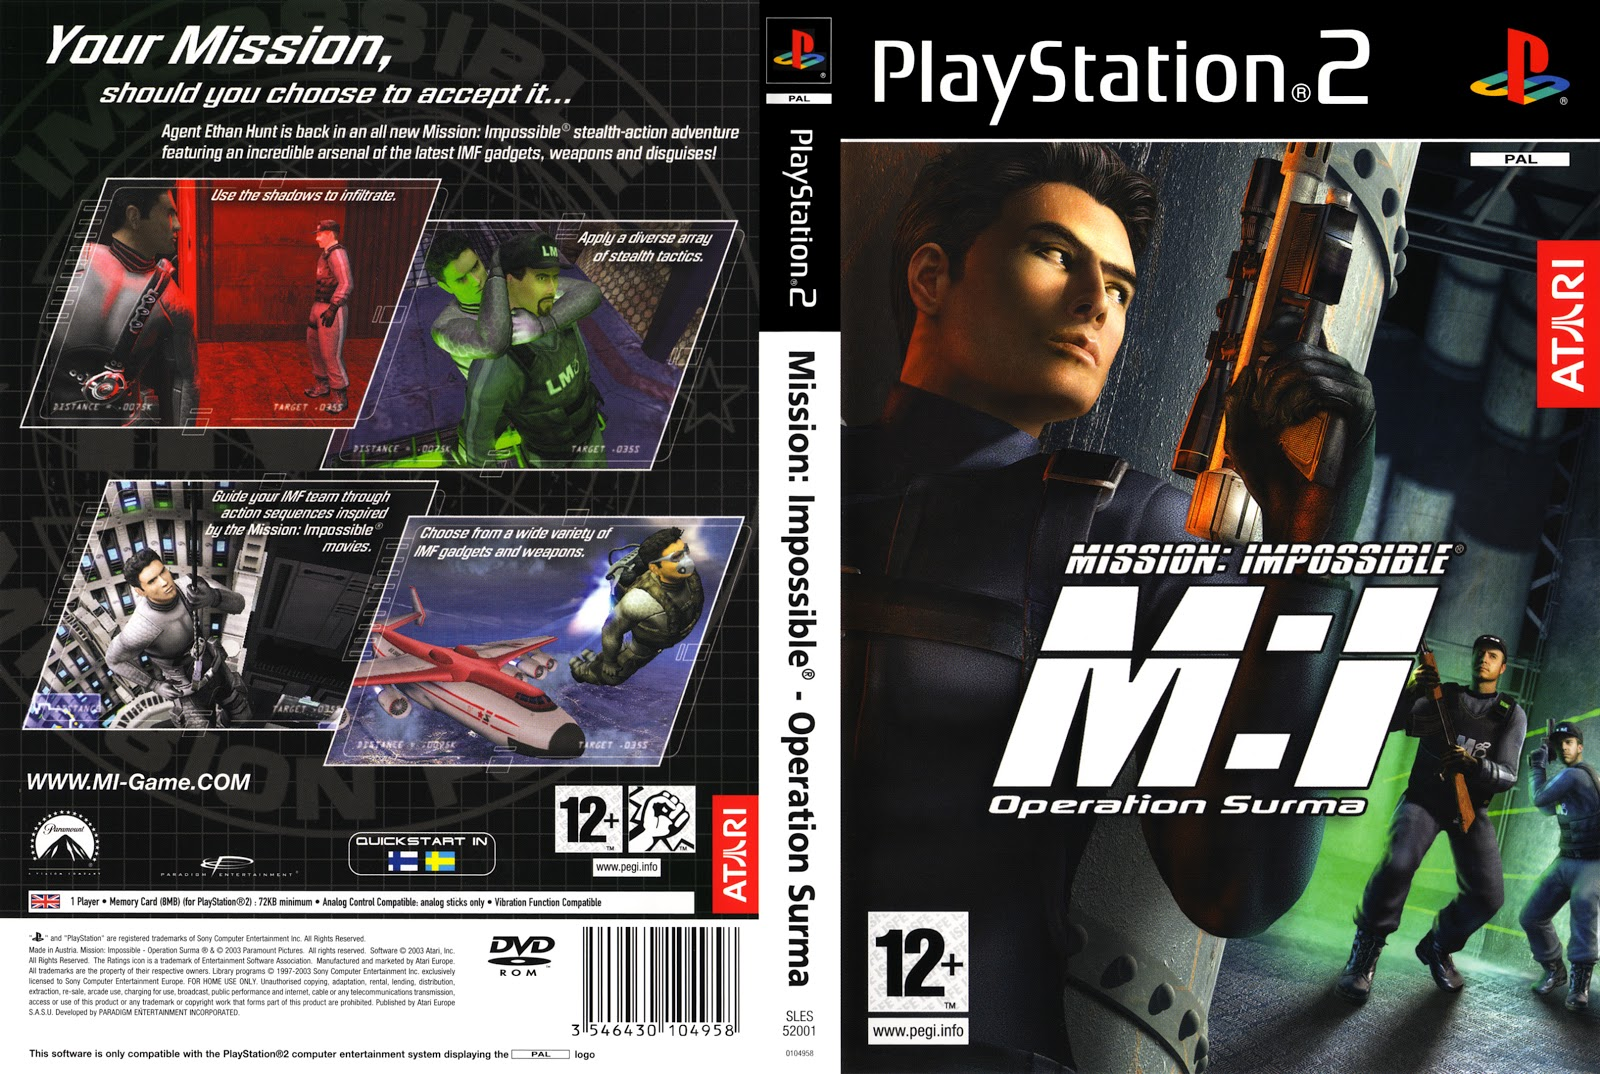 Ps2 mission impossible operation surma